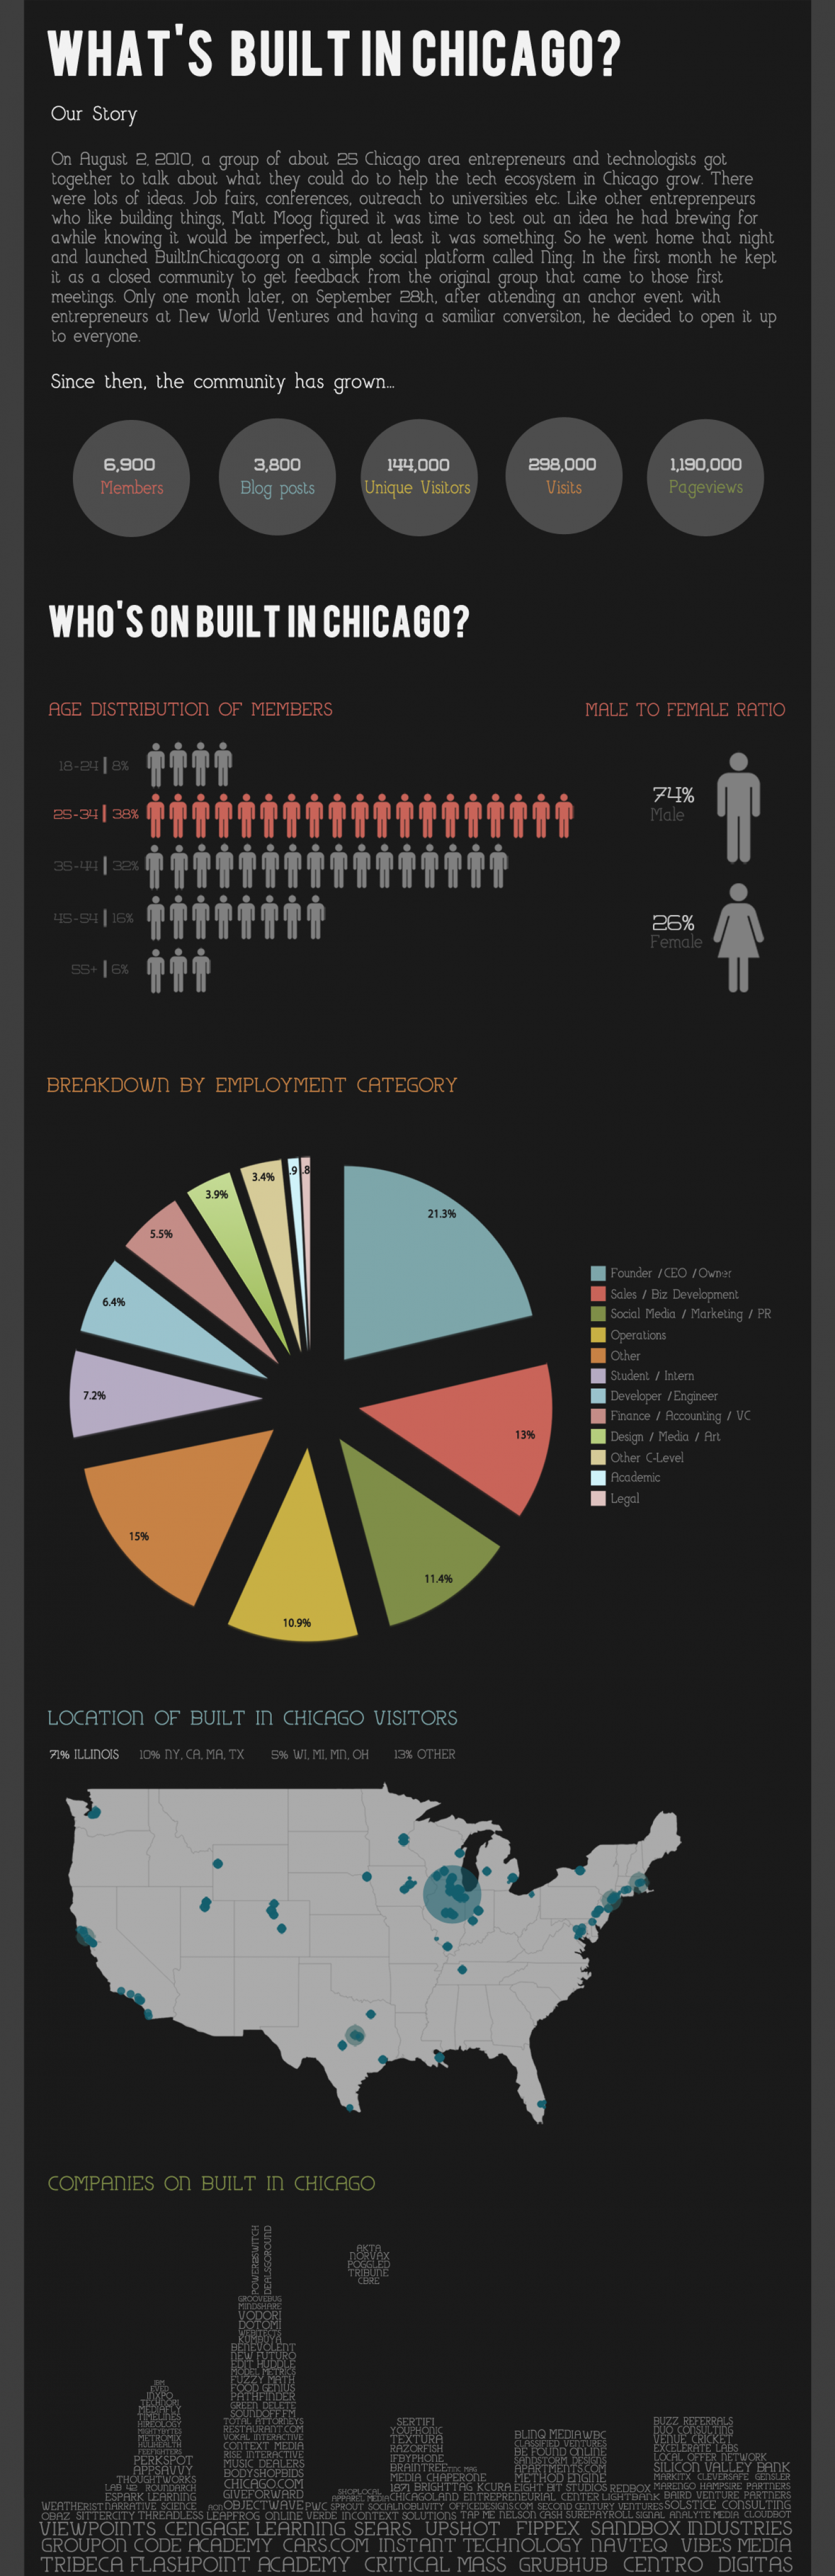 Who's On Built In Chicago? Infographic